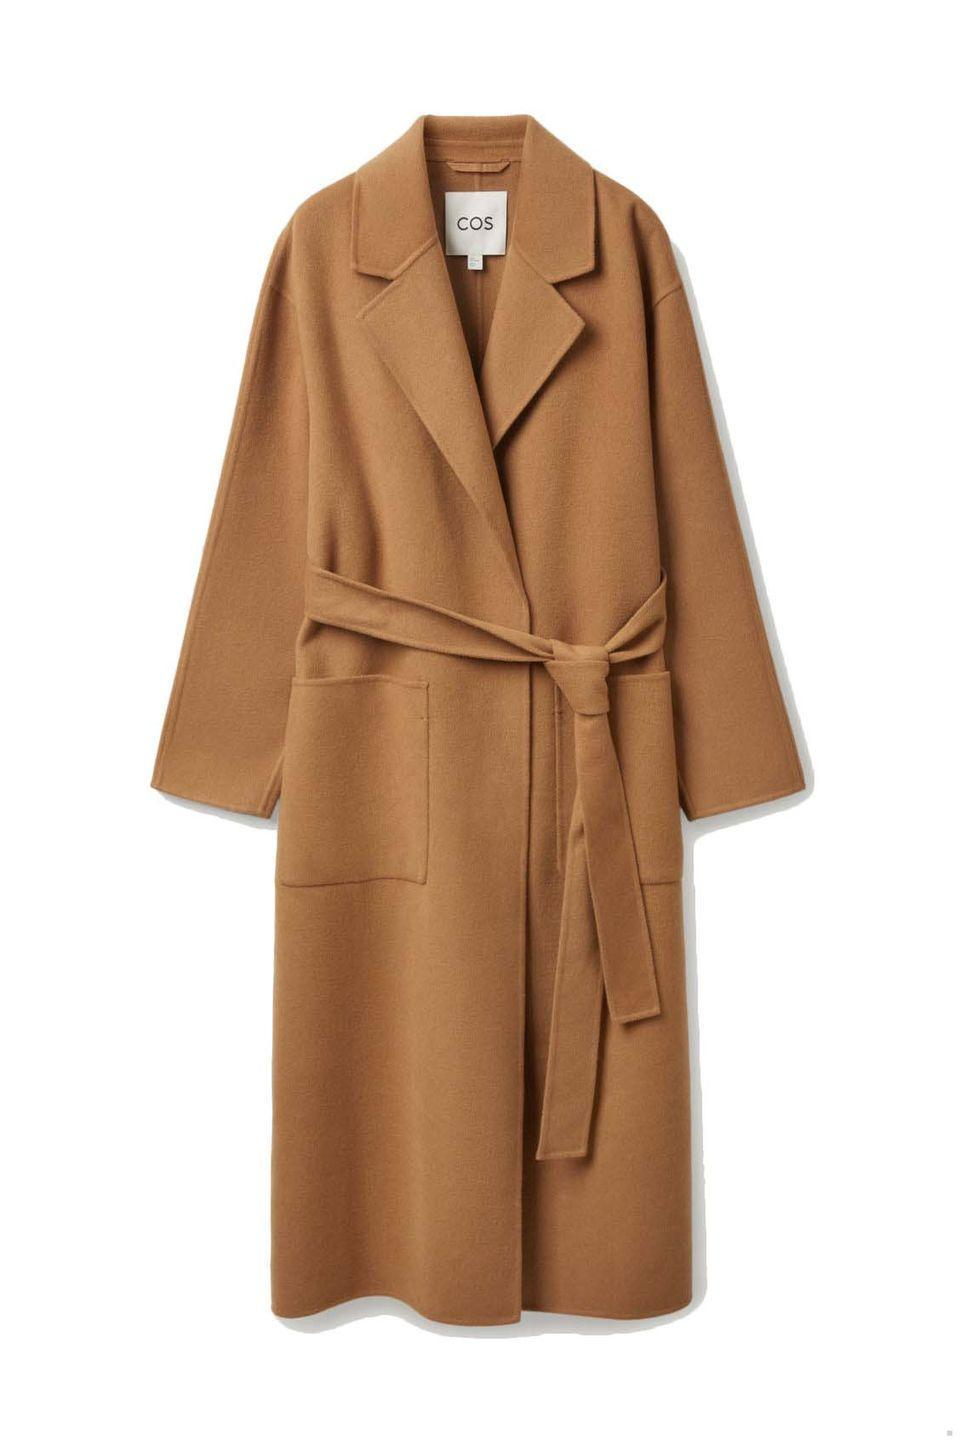 """<p><a class=""""link rapid-noclick-resp"""" href=""""https://www.cosstores.com/en_gbp/women/womenswear/coats-and-jackets/coats/product.belted-wrap-coat-beige.0996812003.html"""" rel=""""nofollow noopener"""" target=""""_blank"""" data-ylk=""""slk:SHOP NOW"""">SHOP NOW</a></p><p>Cos' camel coat is made from responsibly-sourced wool and Tencel™ lyocell fibres (derived from wood pulp), so it's a more sustainable choice. We like how this classic wrap style is left unlined, to allow for easy layering in the trans-seasonal months.</p><p>Belted Wrap Coat, £190, Cos</p>"""